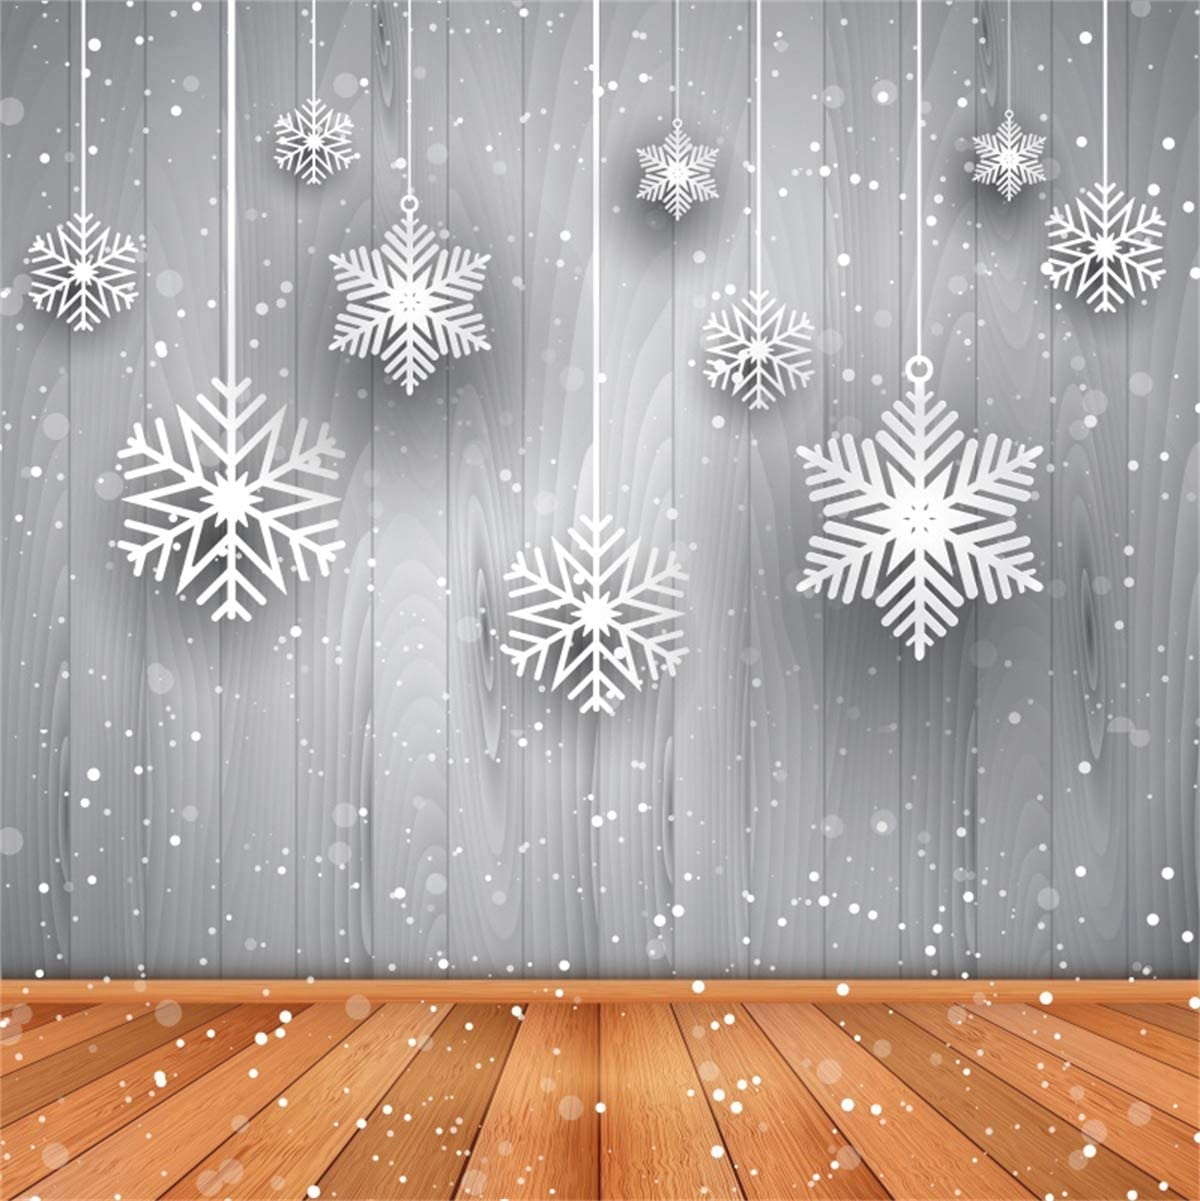 YEELE 10x10ft Christmas Photography Backdrop 3D Snowflake Brown Wood Floor Background Kids Adults Portrait Xmas Holiday Pictures Photo Booth Photoshoot Props Digital Wallpaper